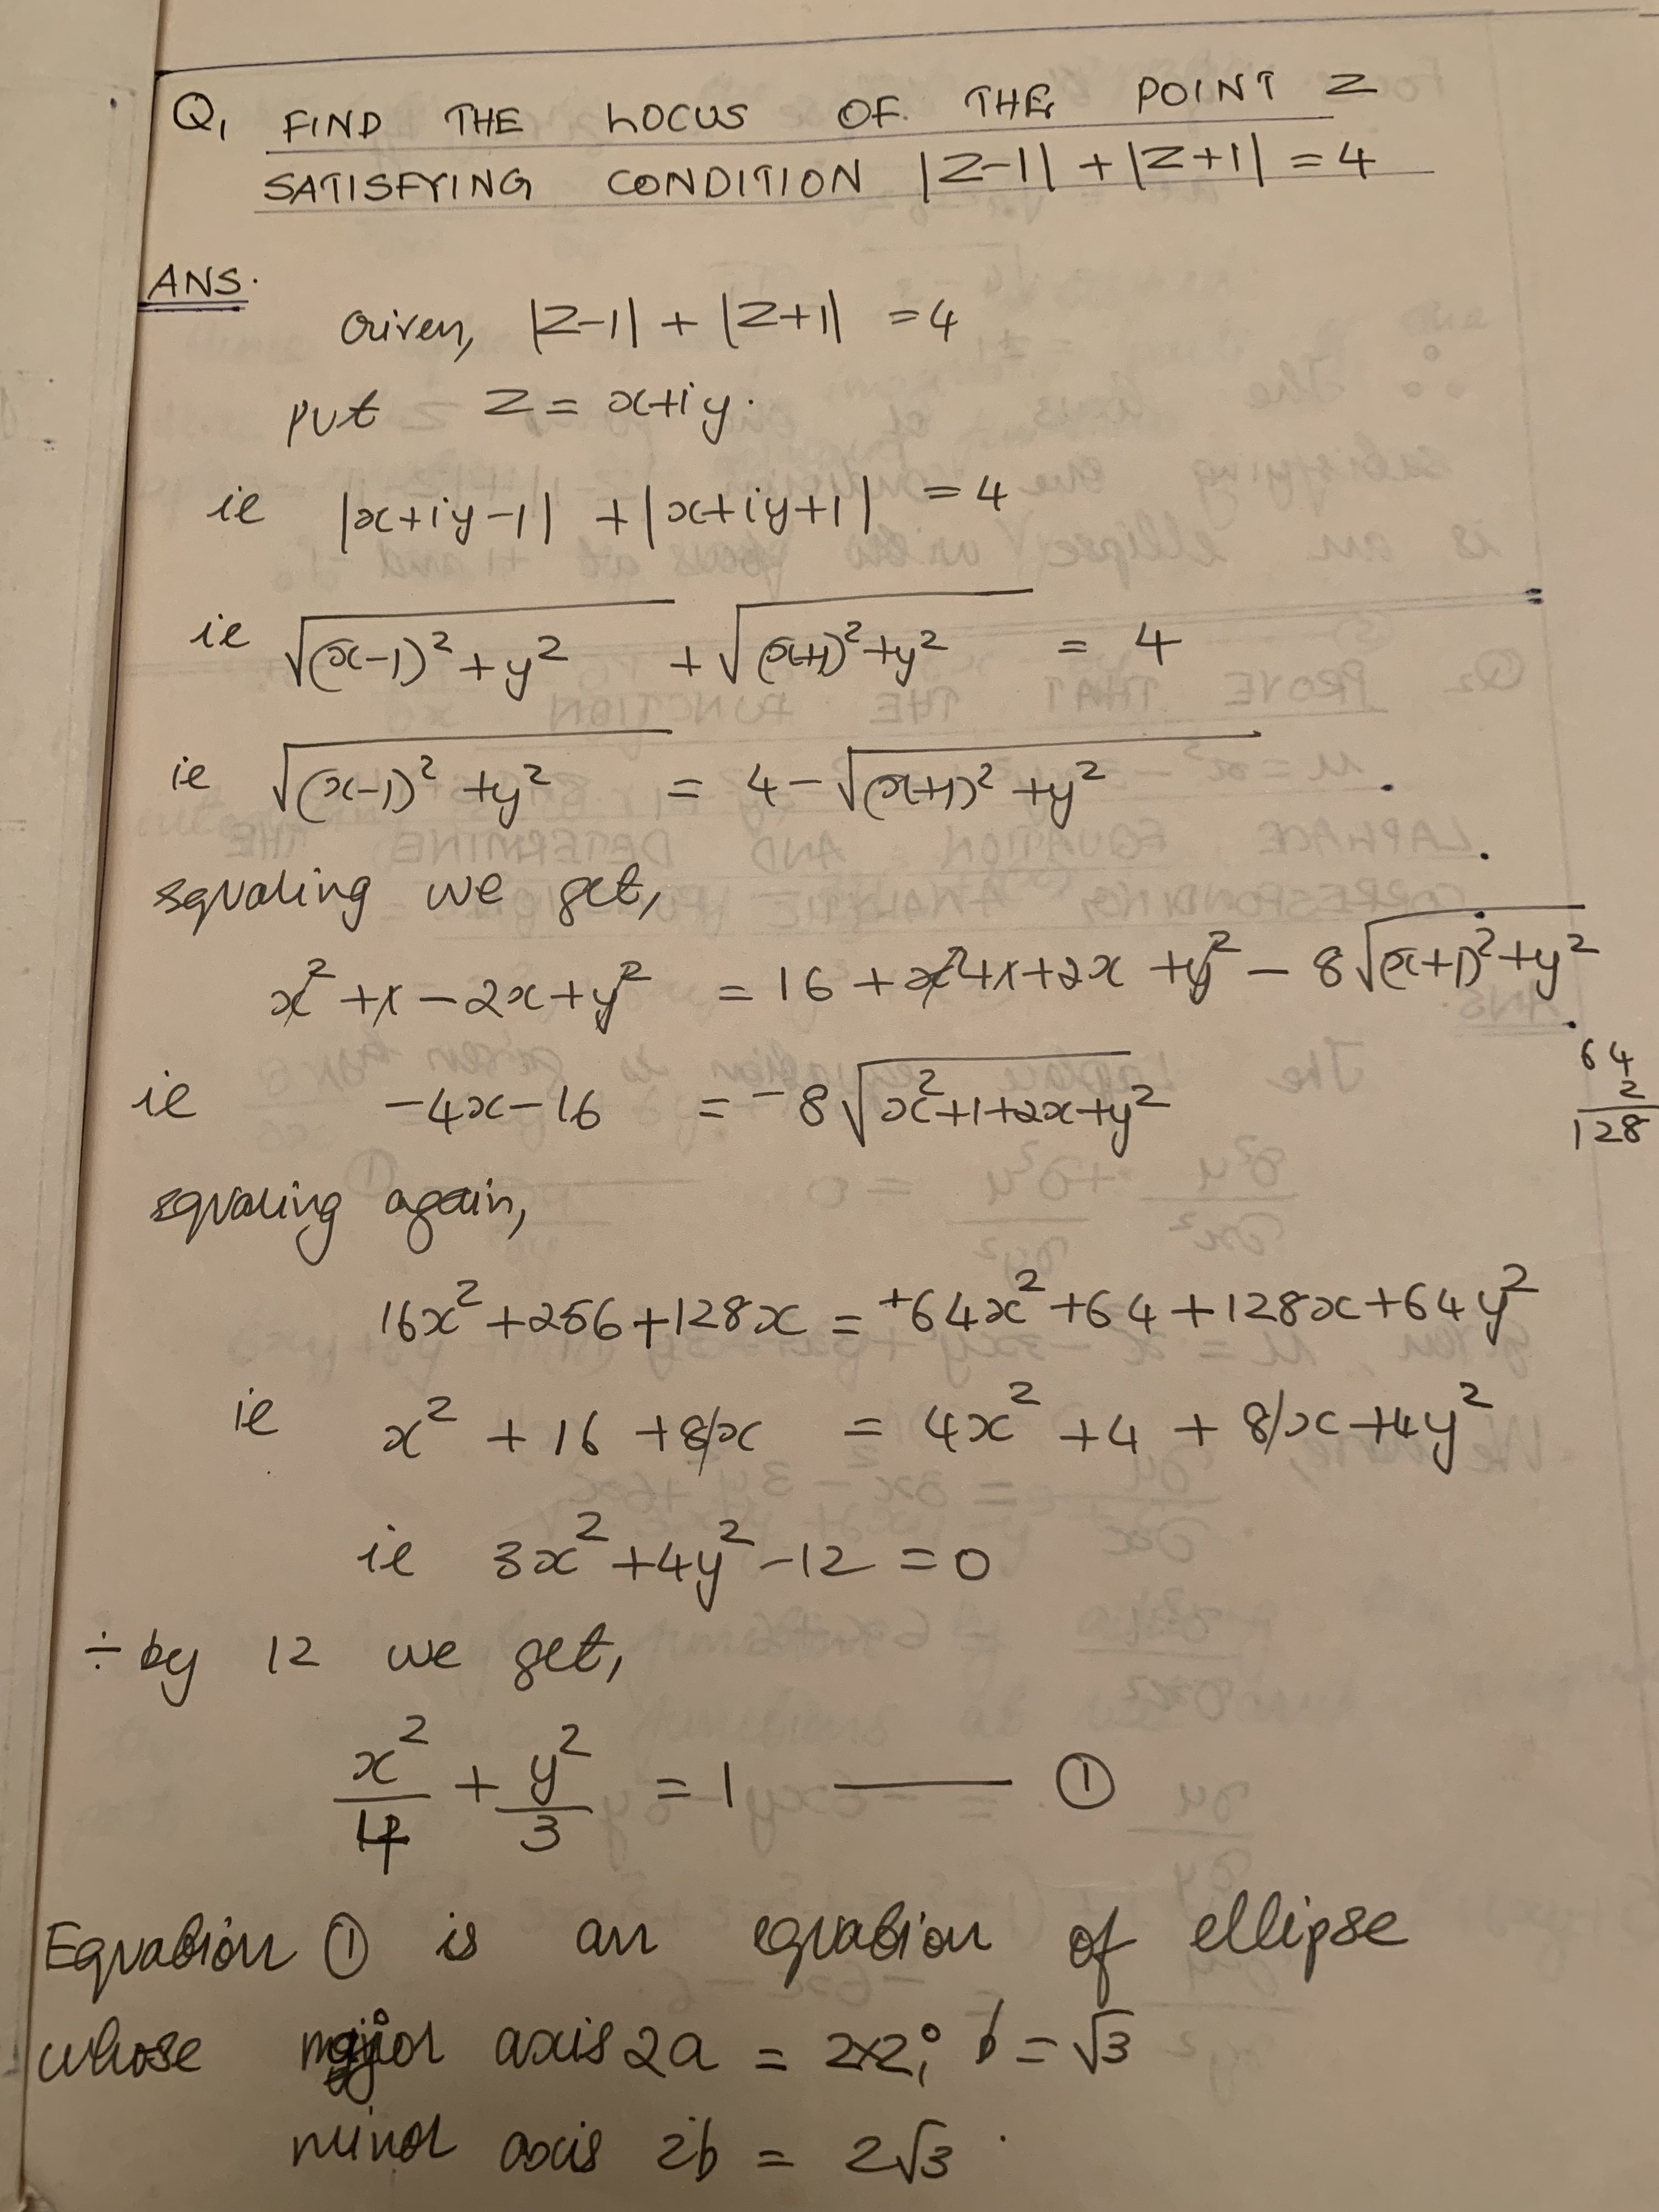 Finding Locus of a point